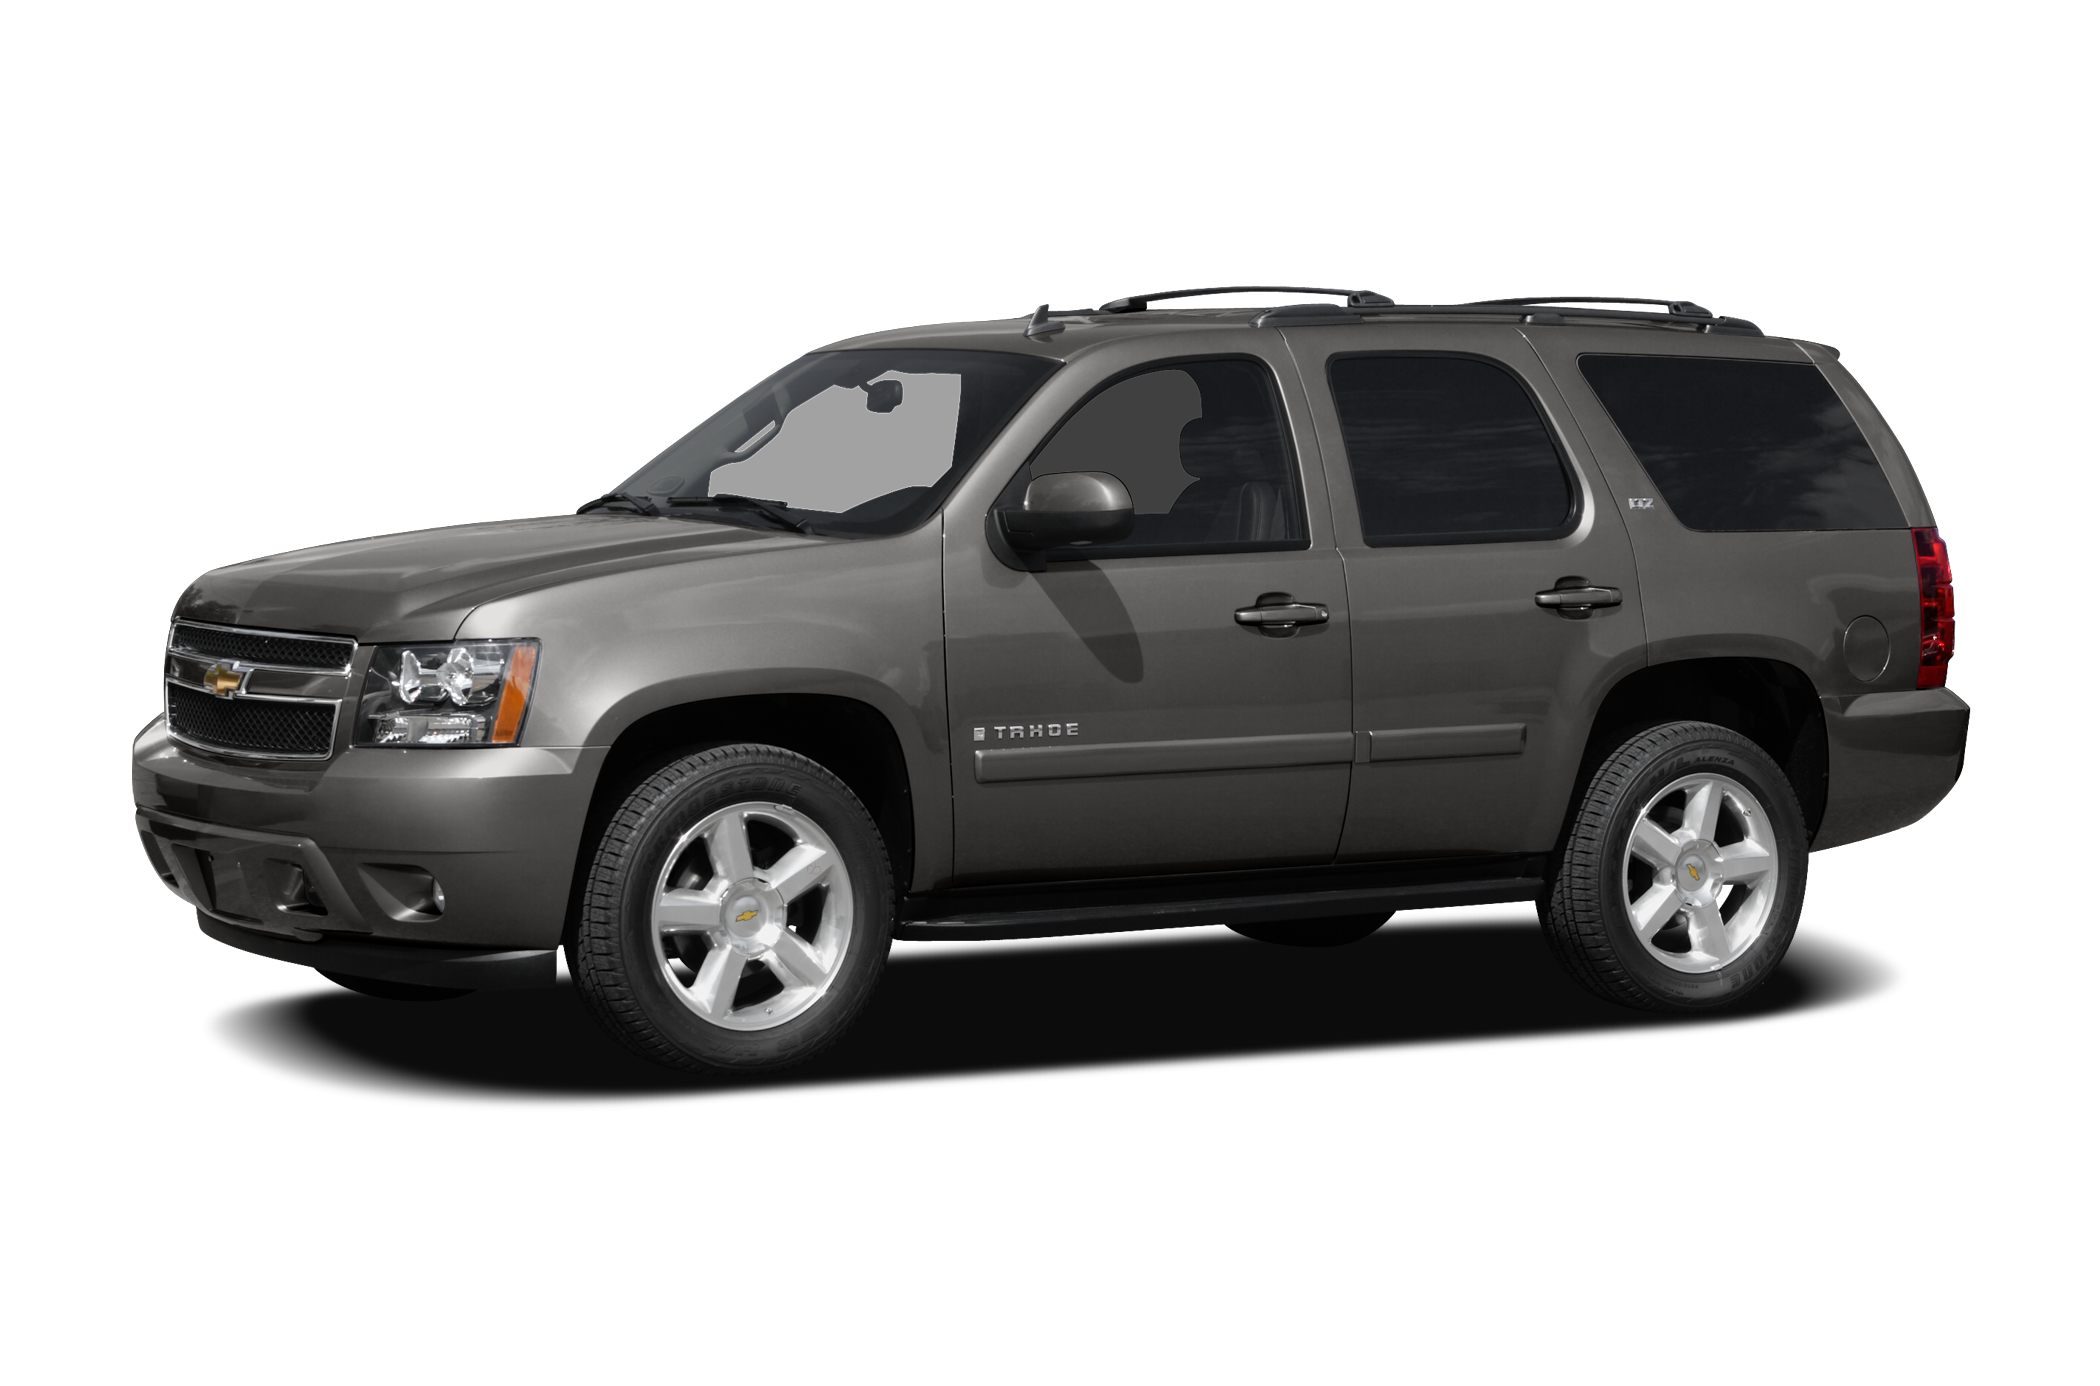 2007 Chevrolet Tahoe LS SUV for sale in Los Angeles for $0 with 100,265 miles